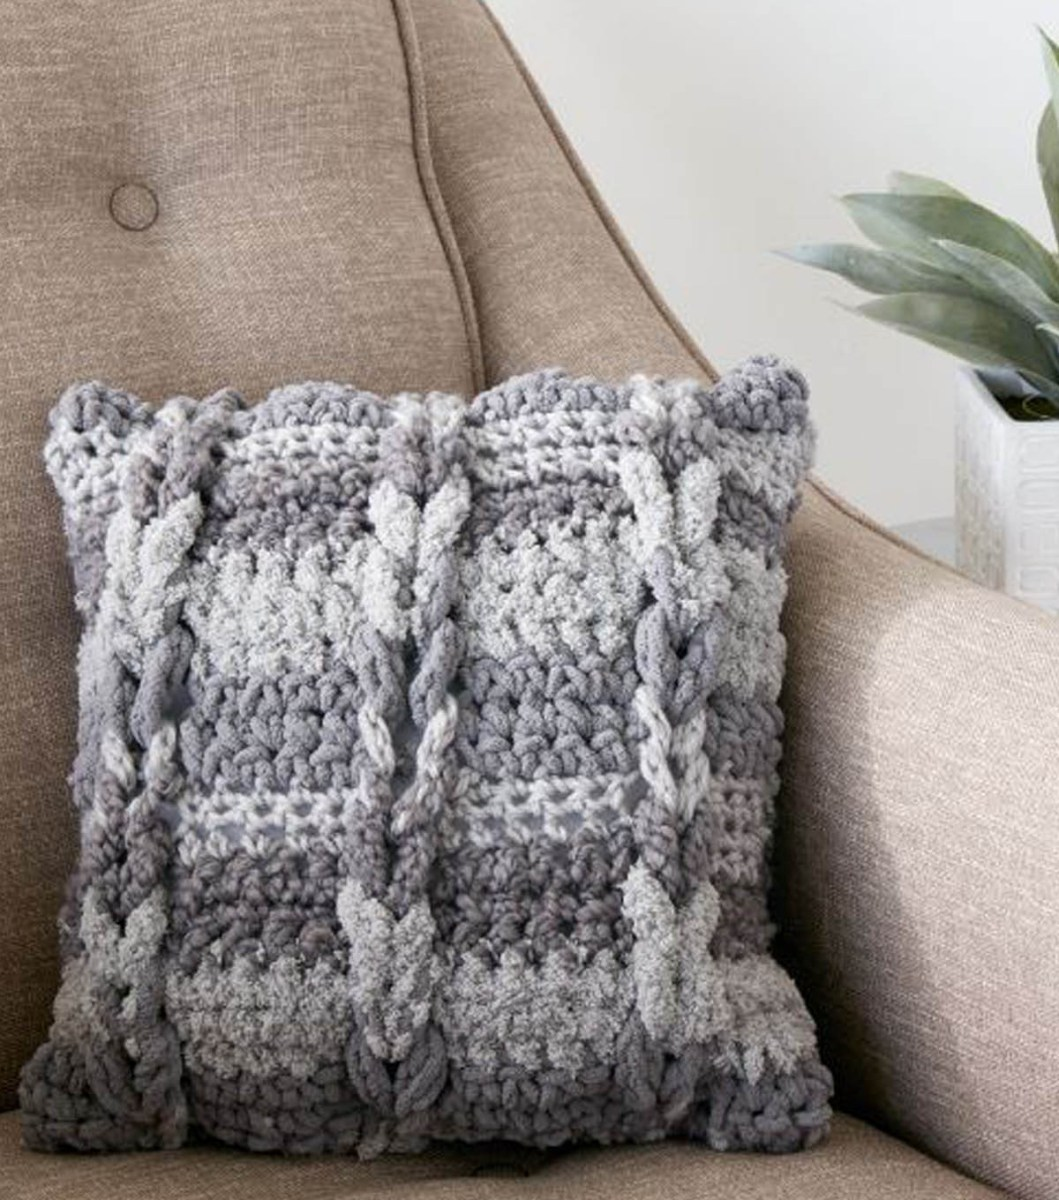 These Crochet Projects Ideas Will Blow Your Mind How To Crochet A Cable Pillow Joann